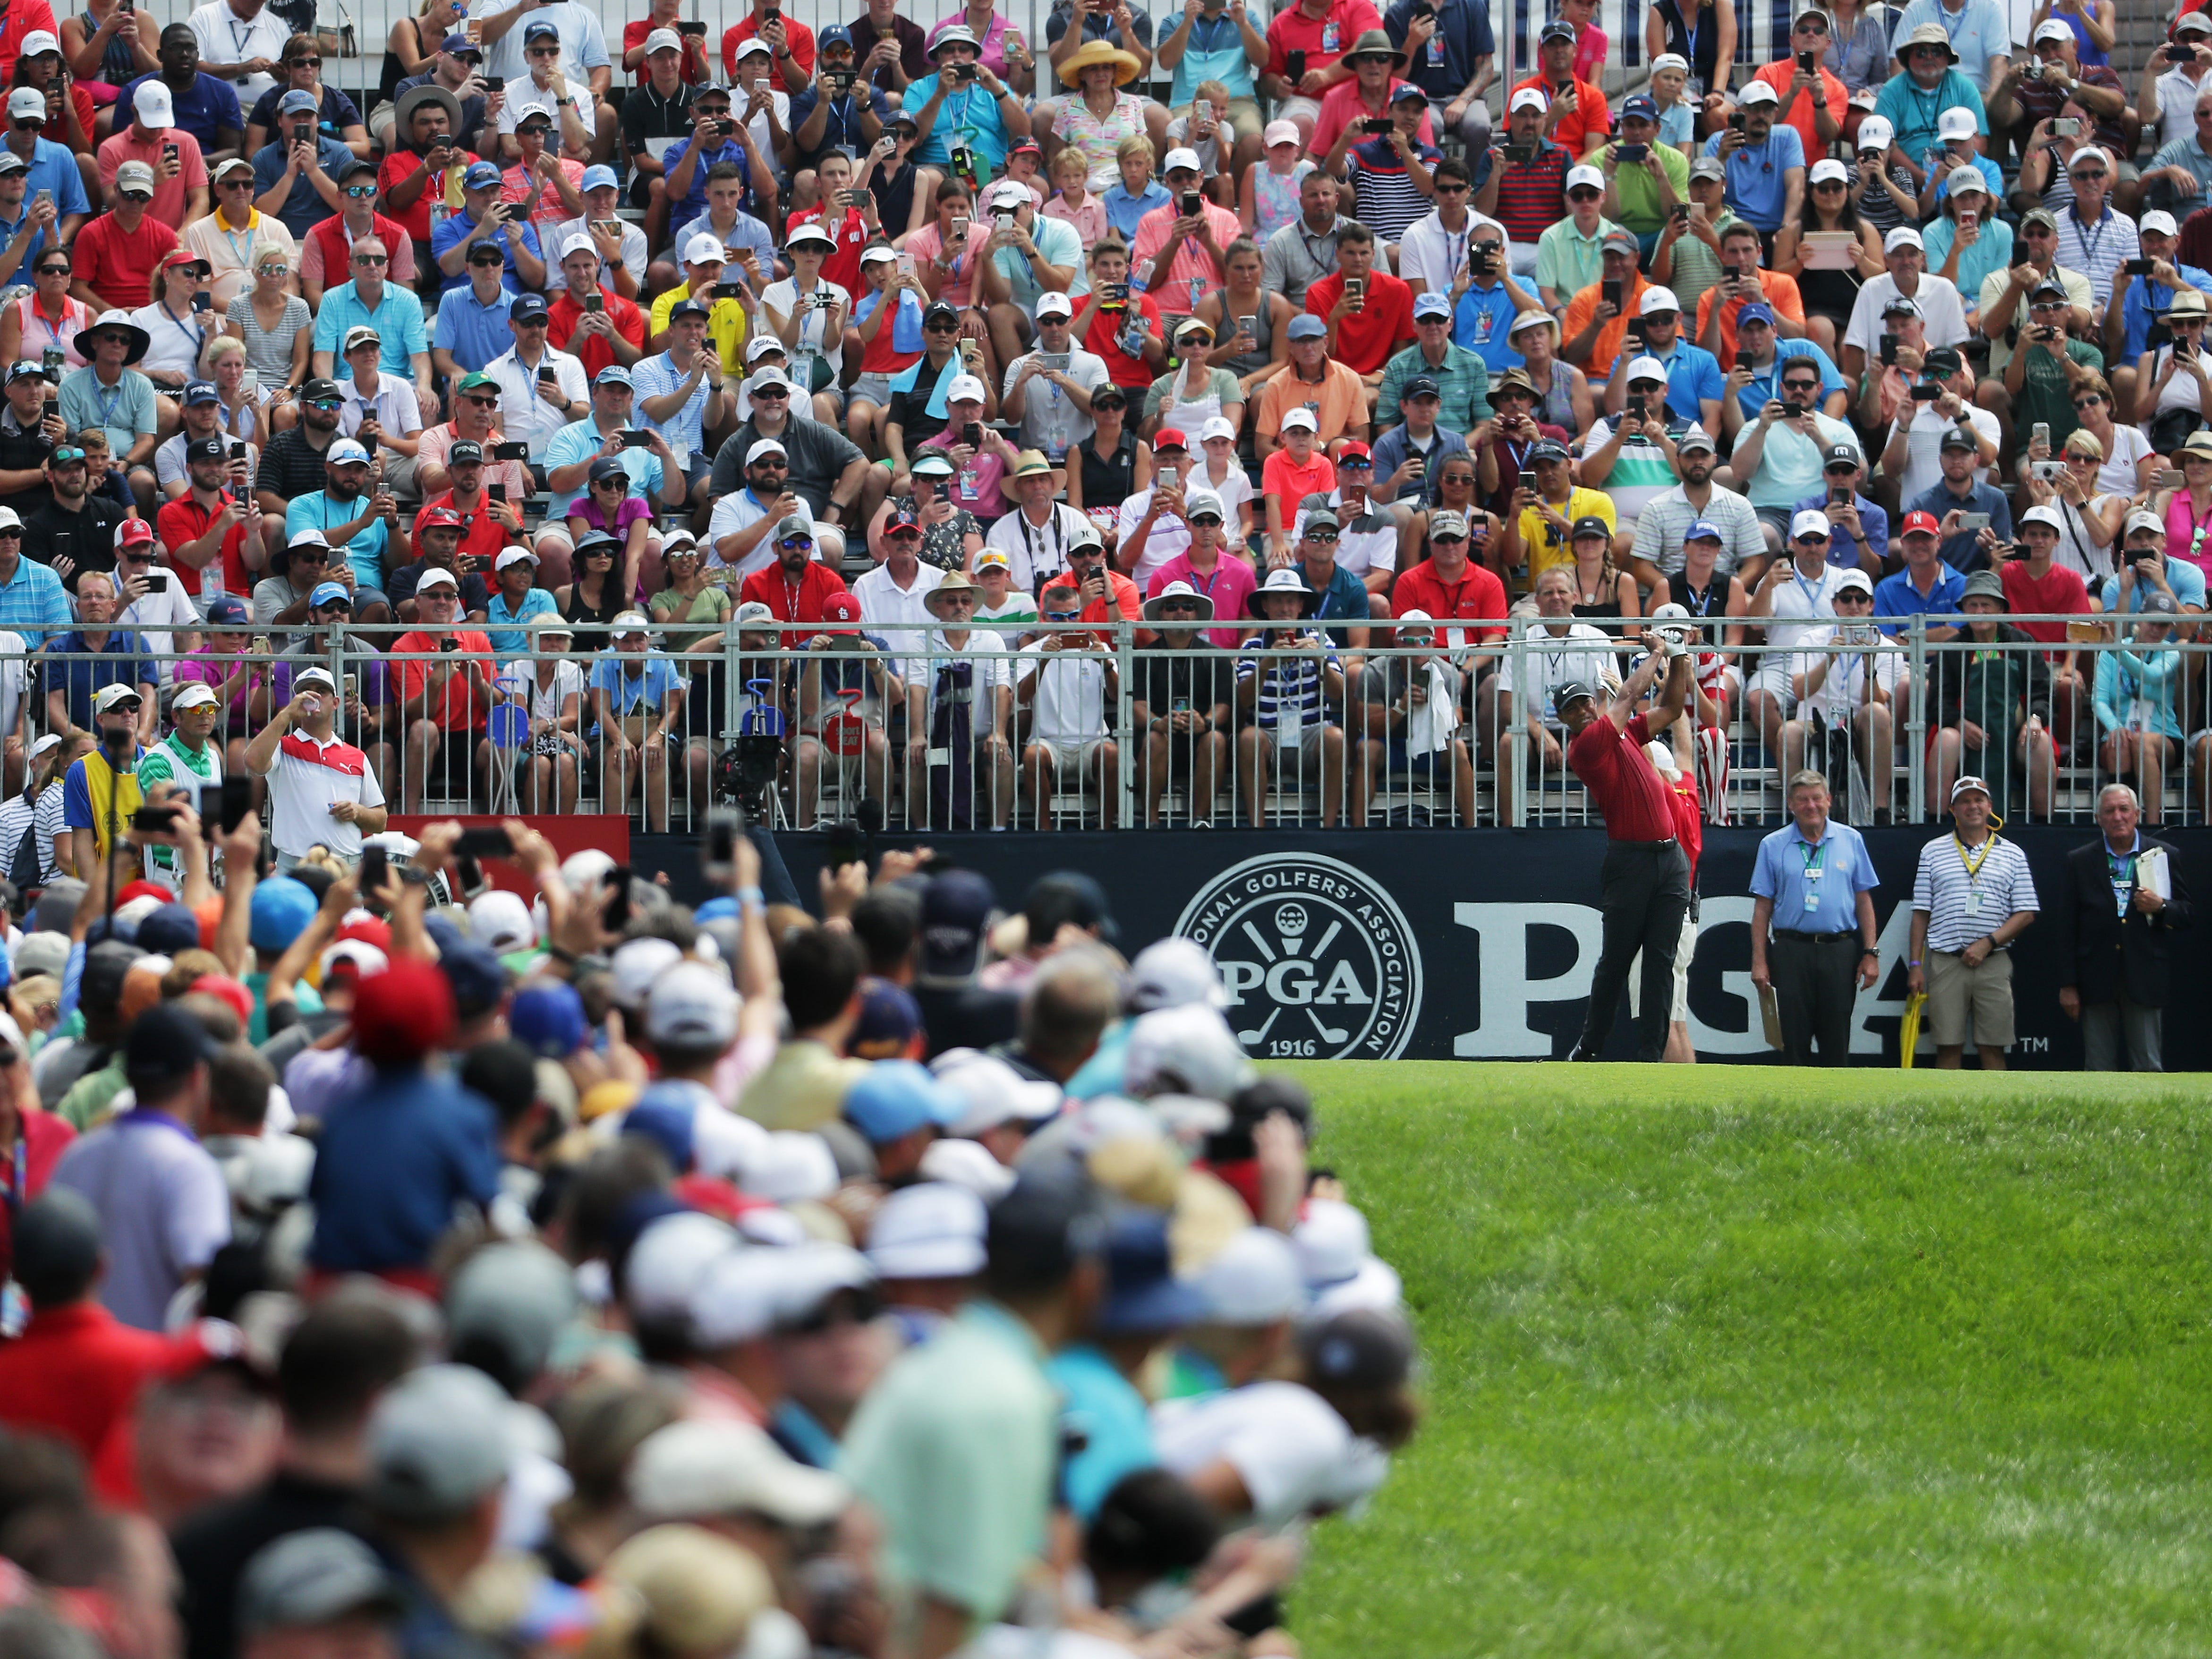 Tiger Woods on the first tee during the final round of the 2018 PGA Championship at Bellerive Country Club on Aug. 12.